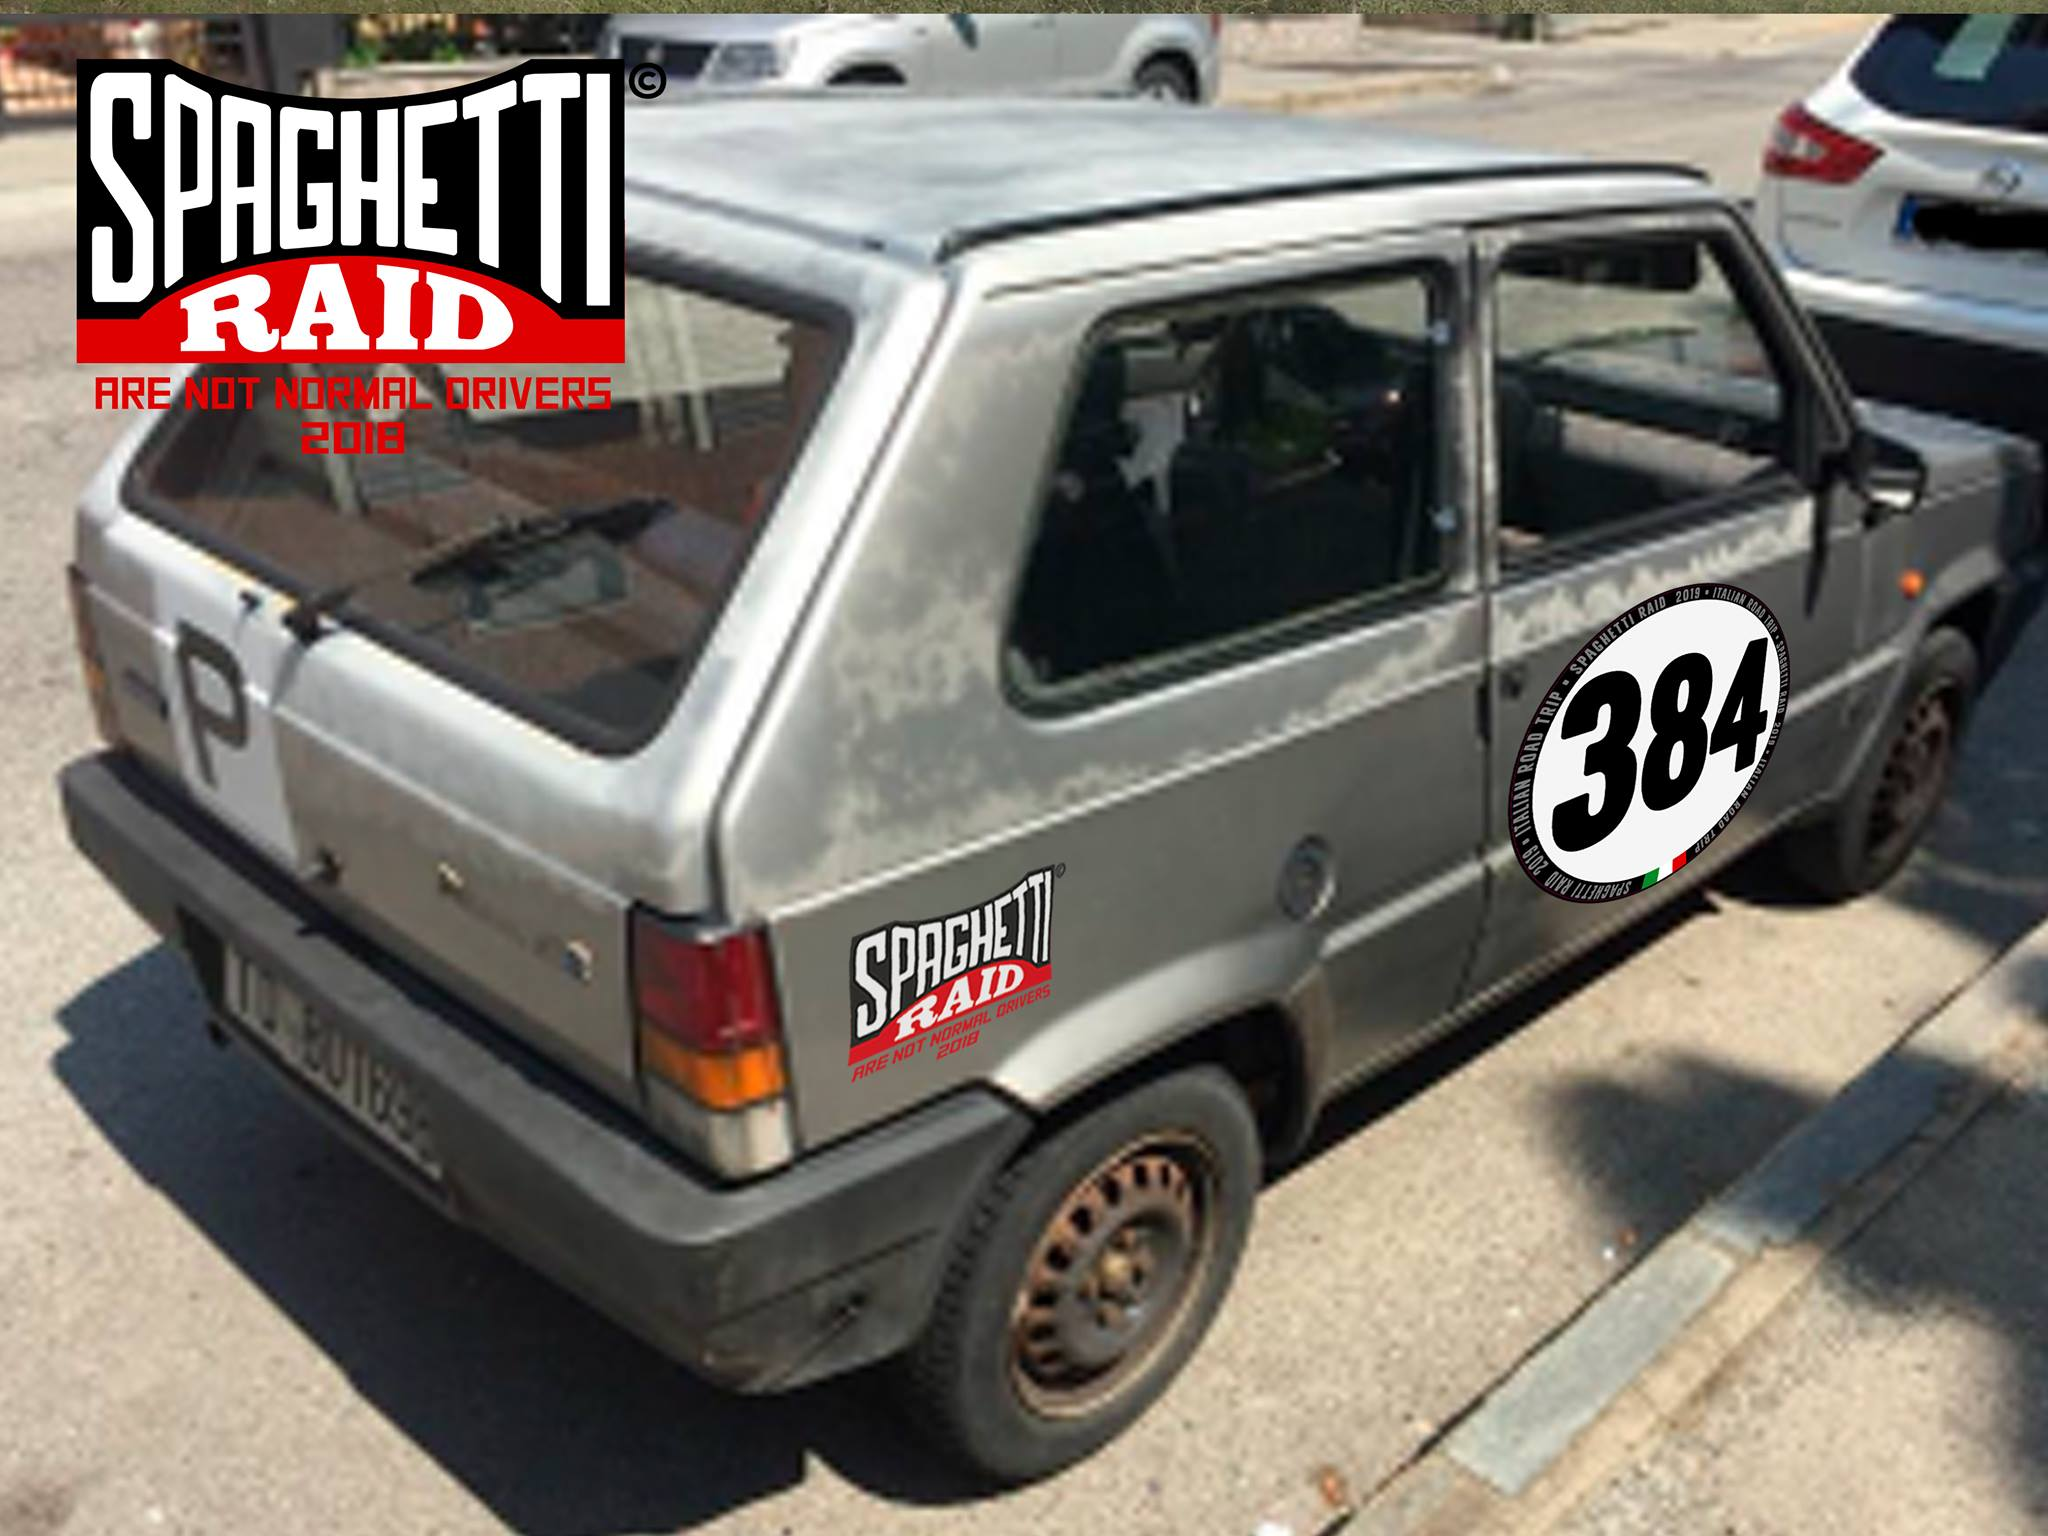 Team PANDASSASSINI 8384 #384 FIAT PANDA 750 del '86 Cittò: Collegno TO